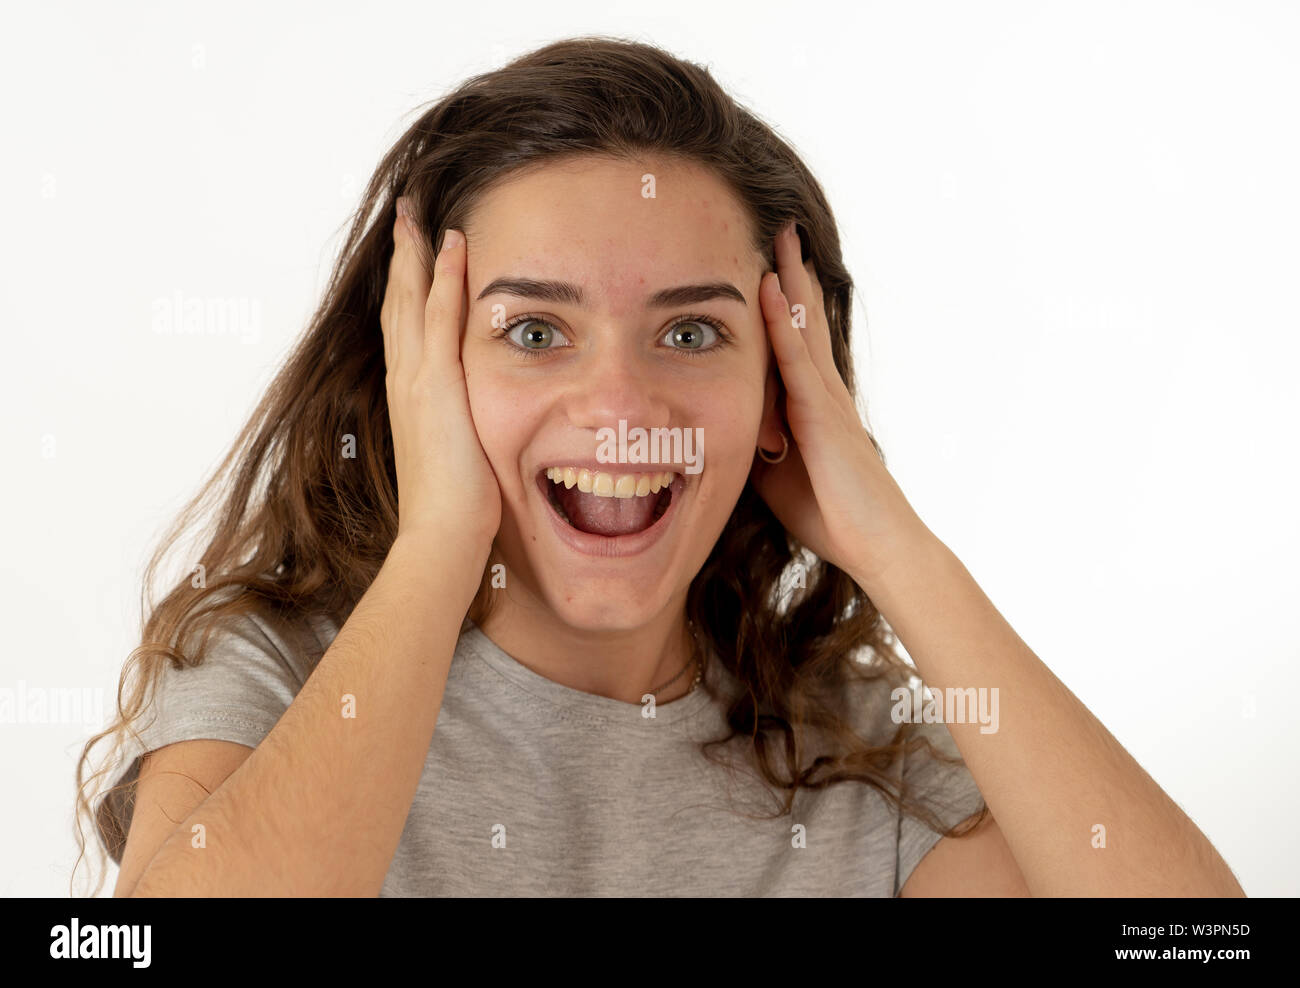 Portrait of beautiful shocked girl celebrating victory, having great success with surprised and happy Face and gestures. In Facial Expression, Human E - Stock Image